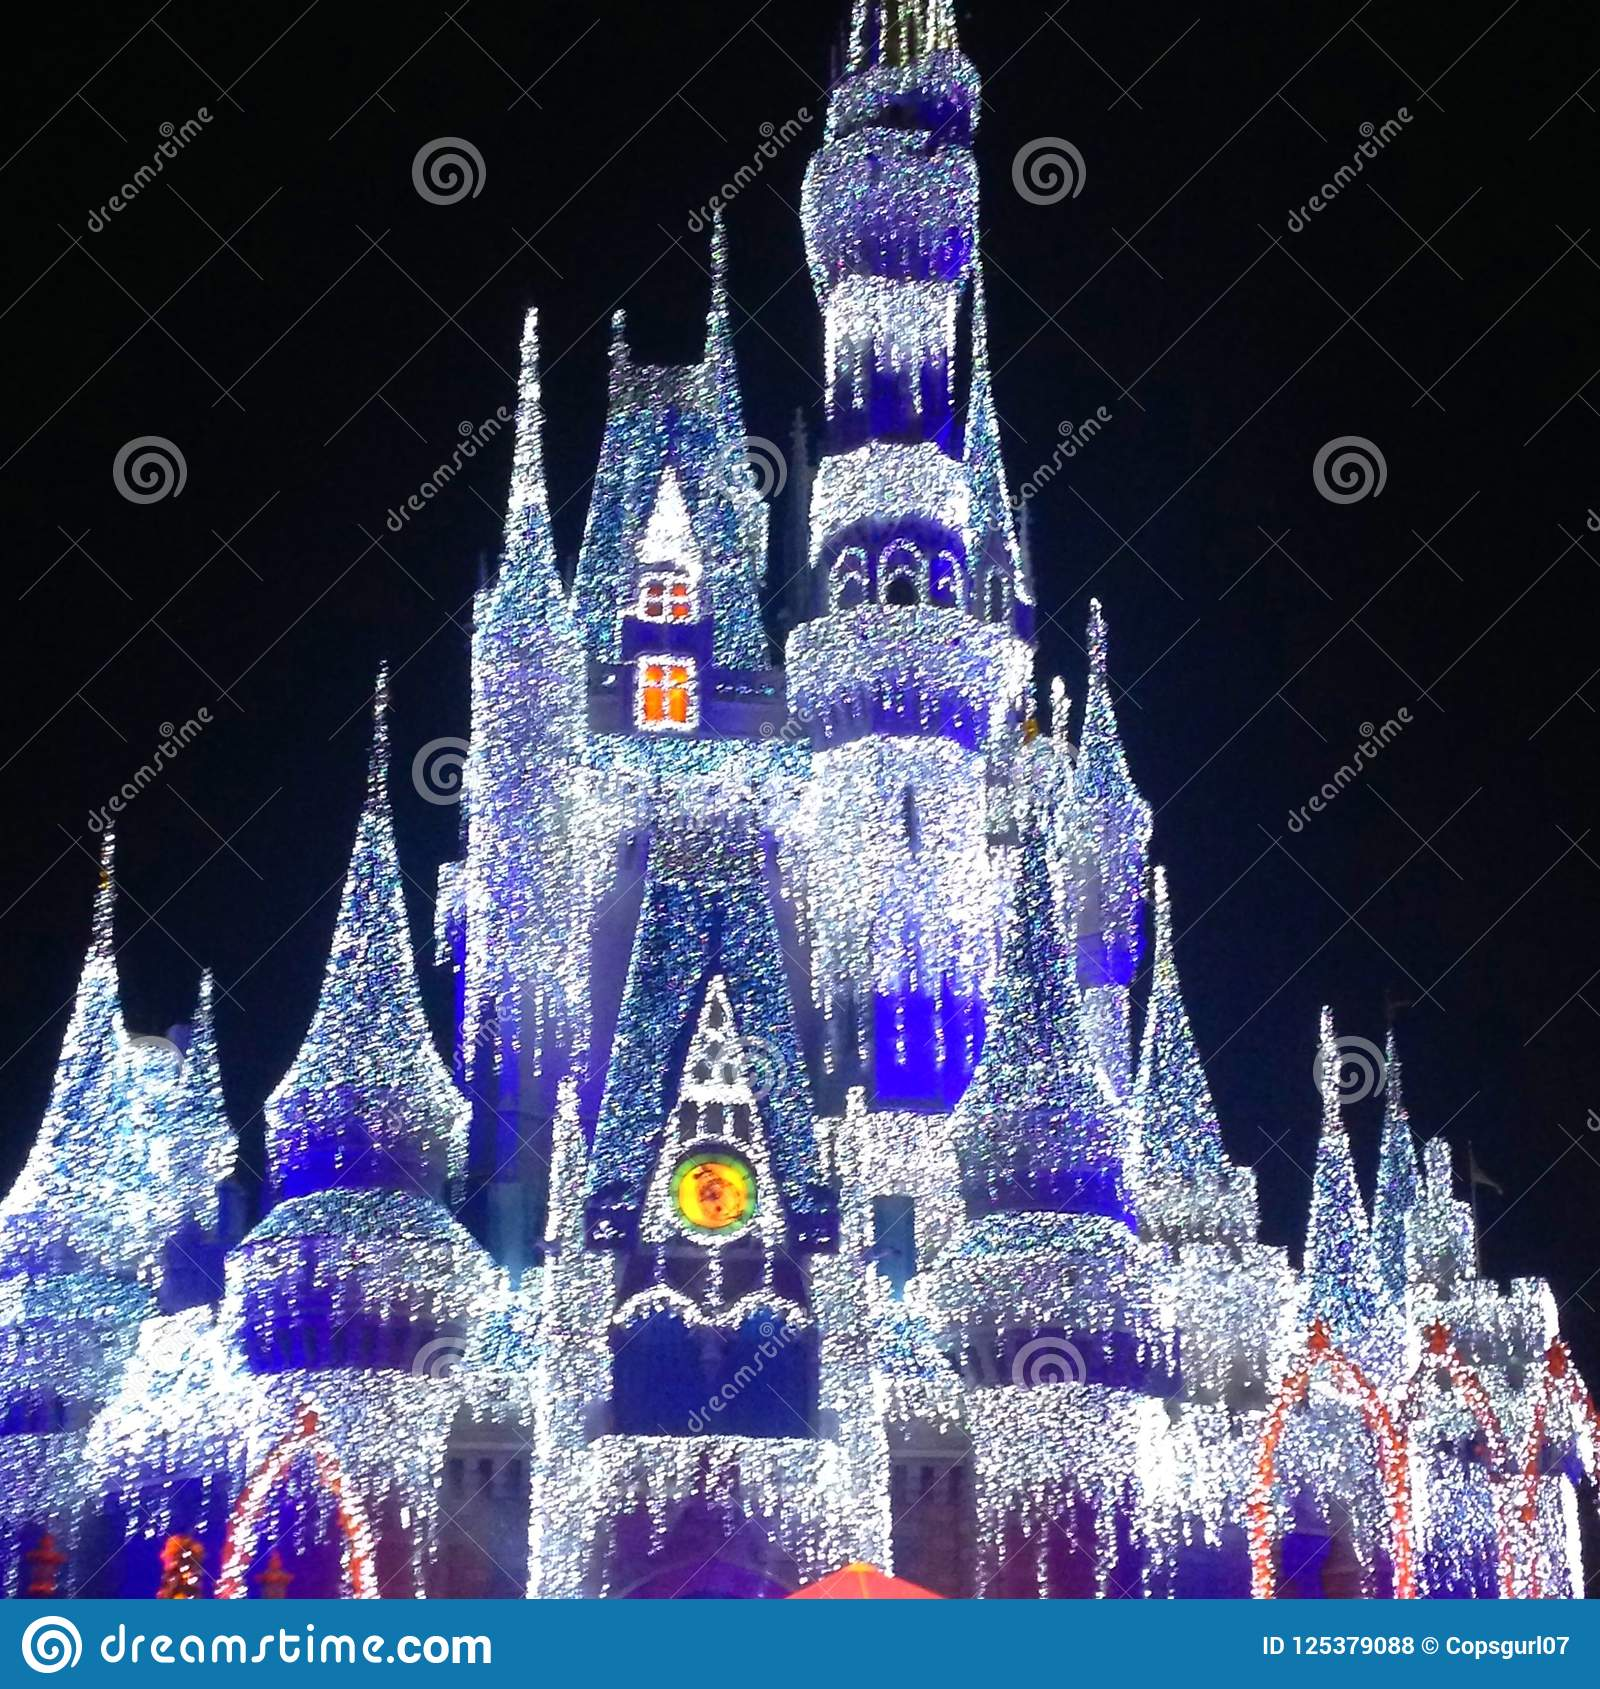 download cinderella castle at christmas editorial stock photo image of elsa kingdom 125379088